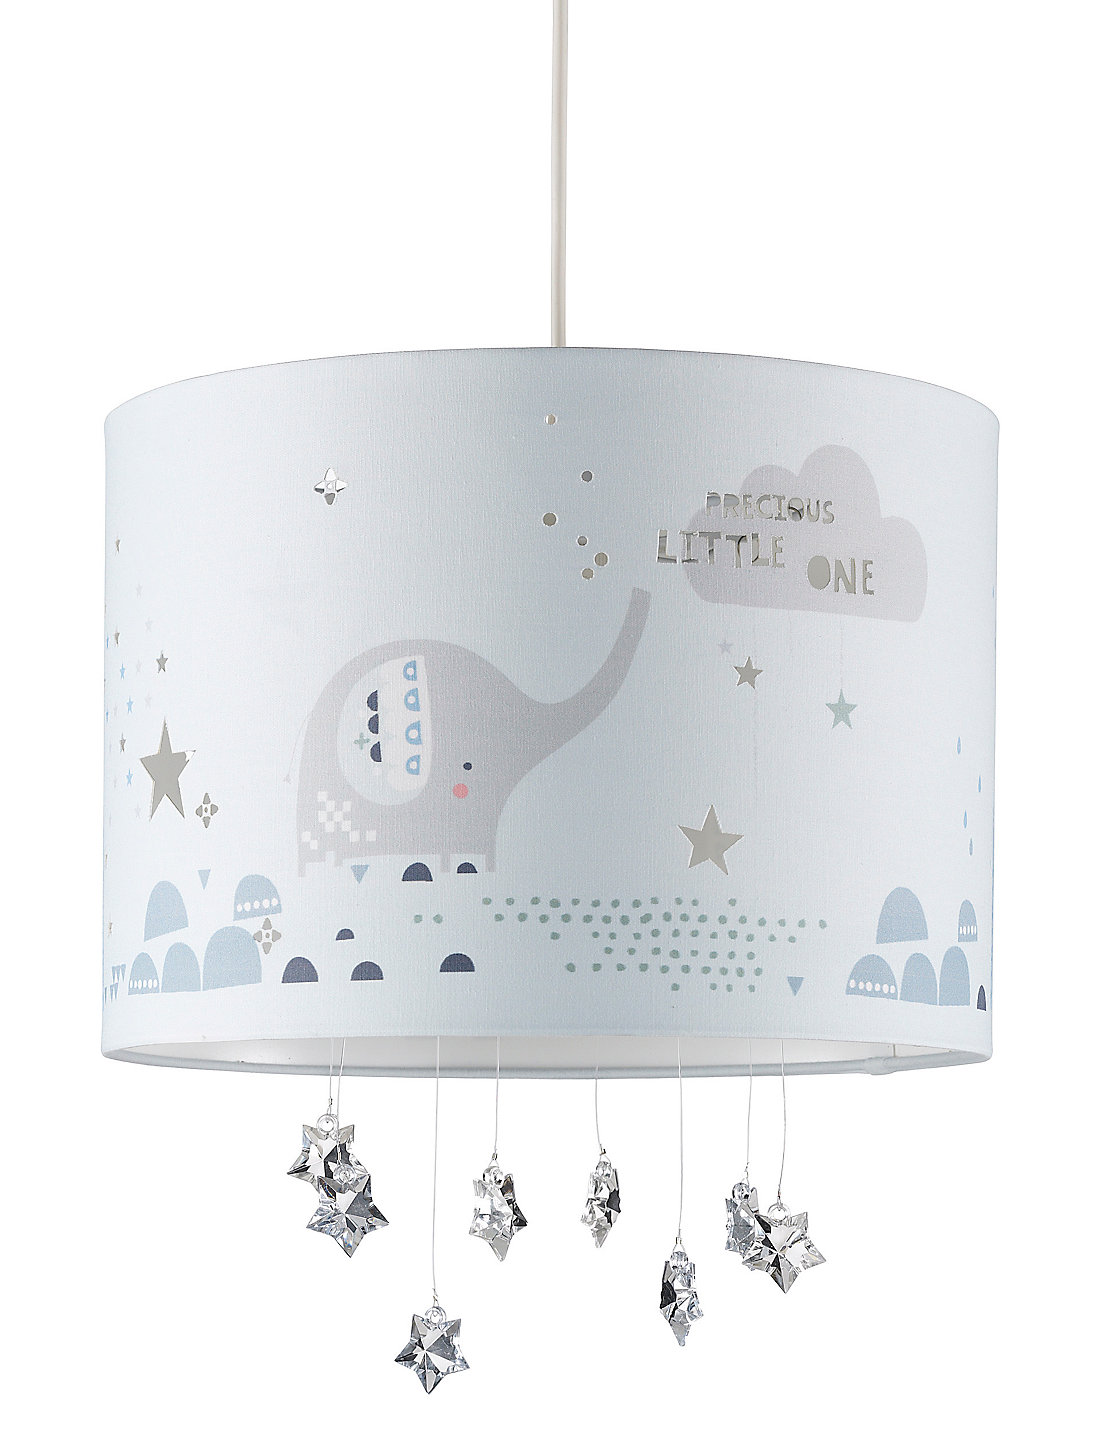 Baby nursery lamp shades thenurseries lamp shade for baby nursery thenurseries aloadofball